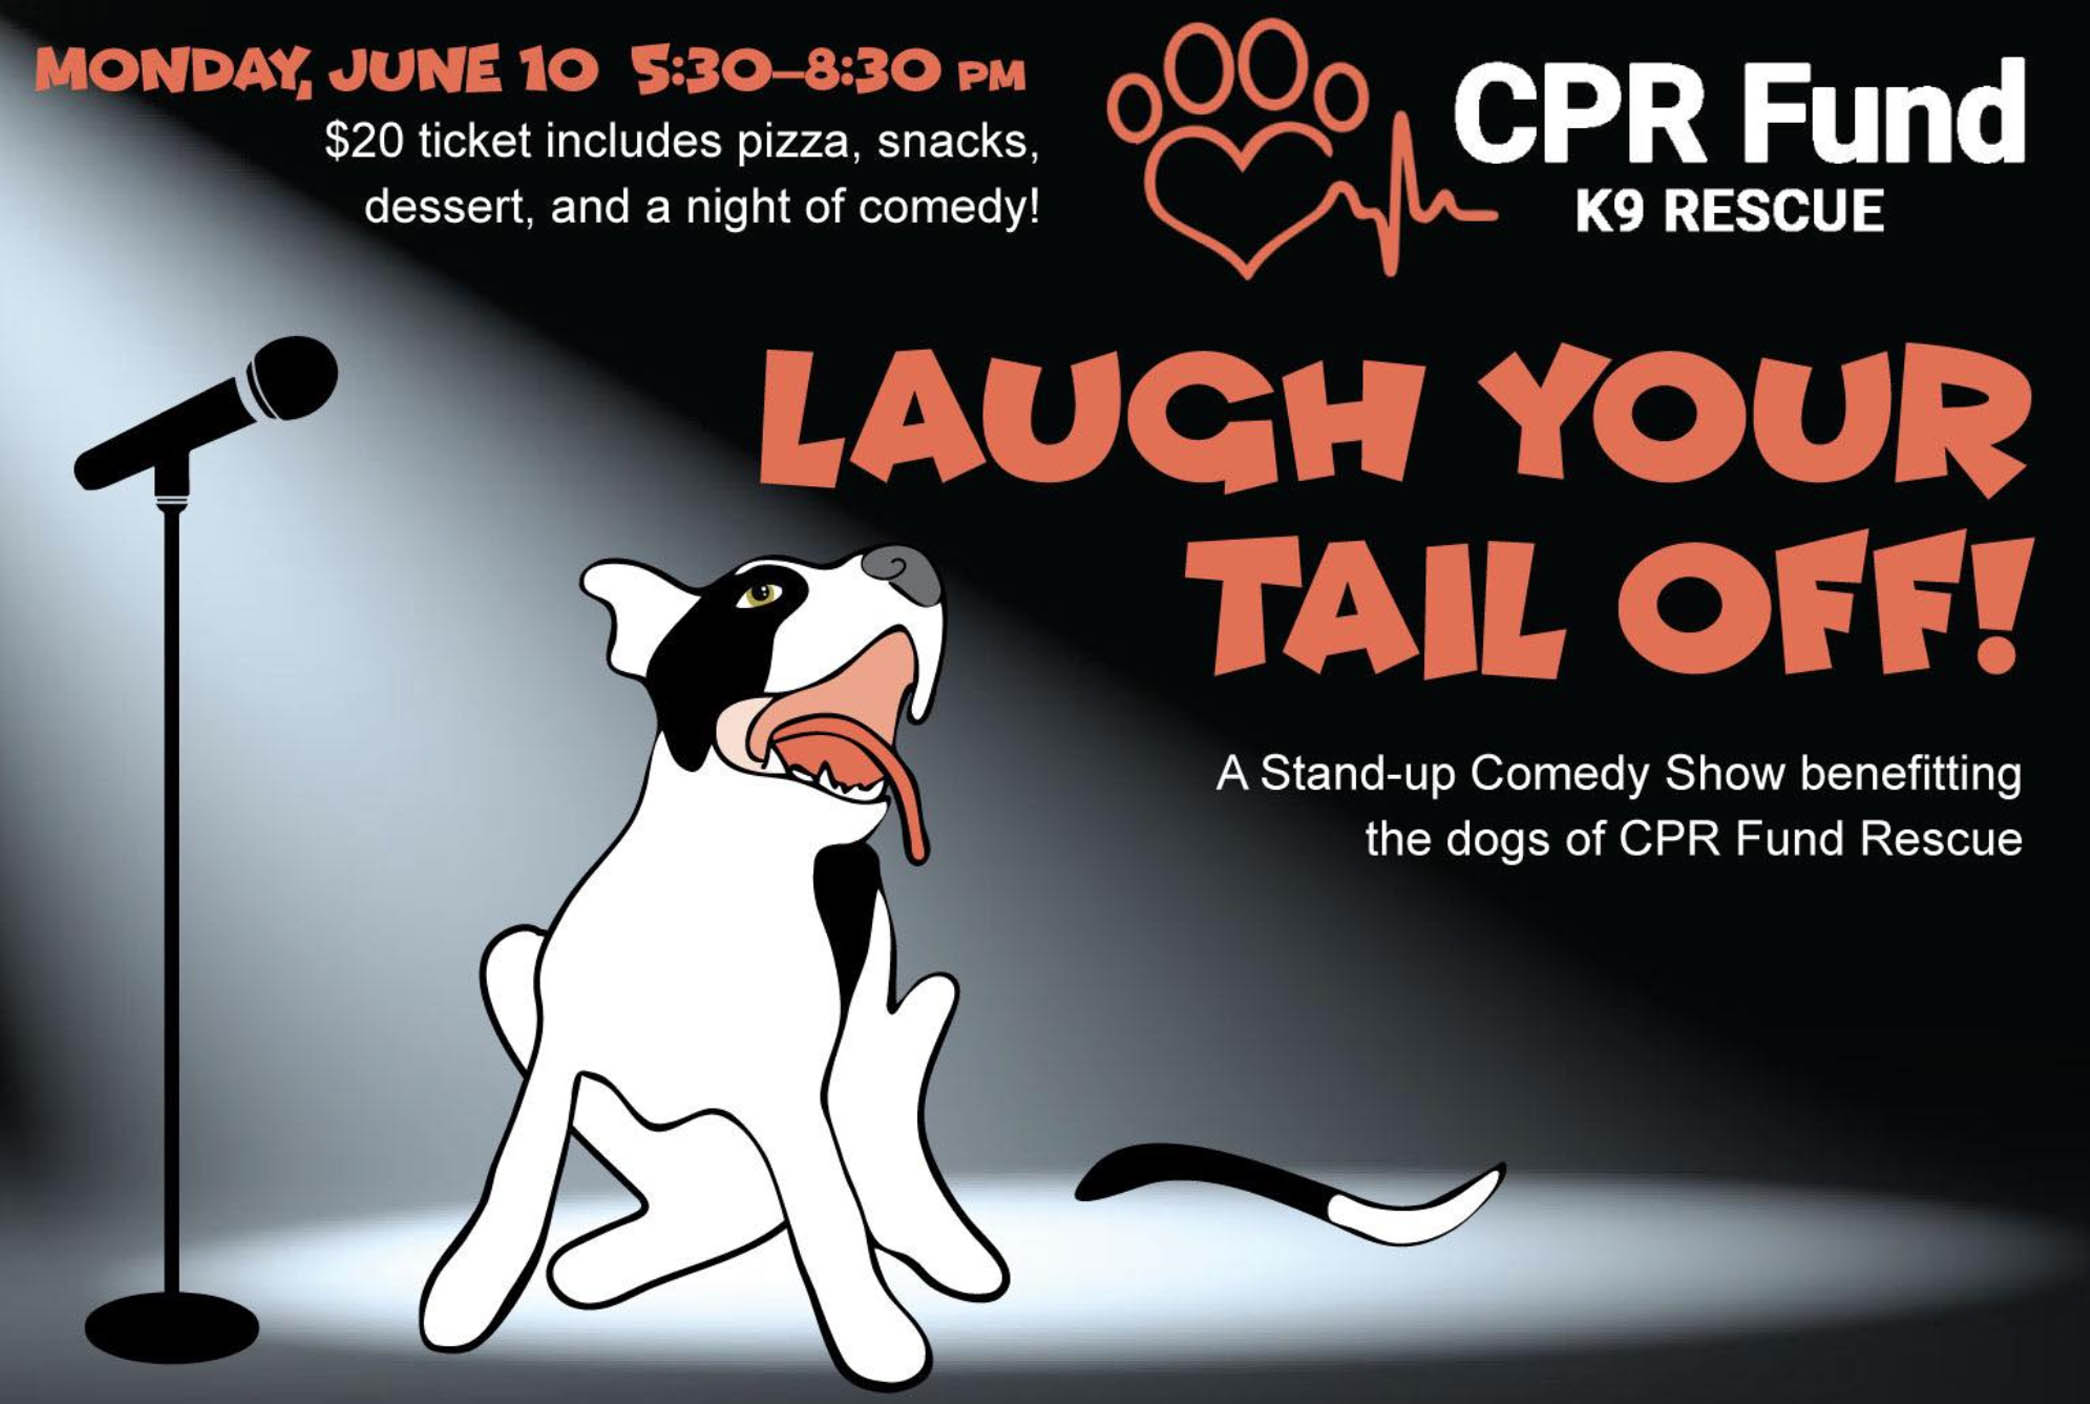 Join us for this fundraising event! Adoptable dogs, food, raffles, and beer - what more could you want? Yes, it's a Monday, but a portion of sales are donated back.